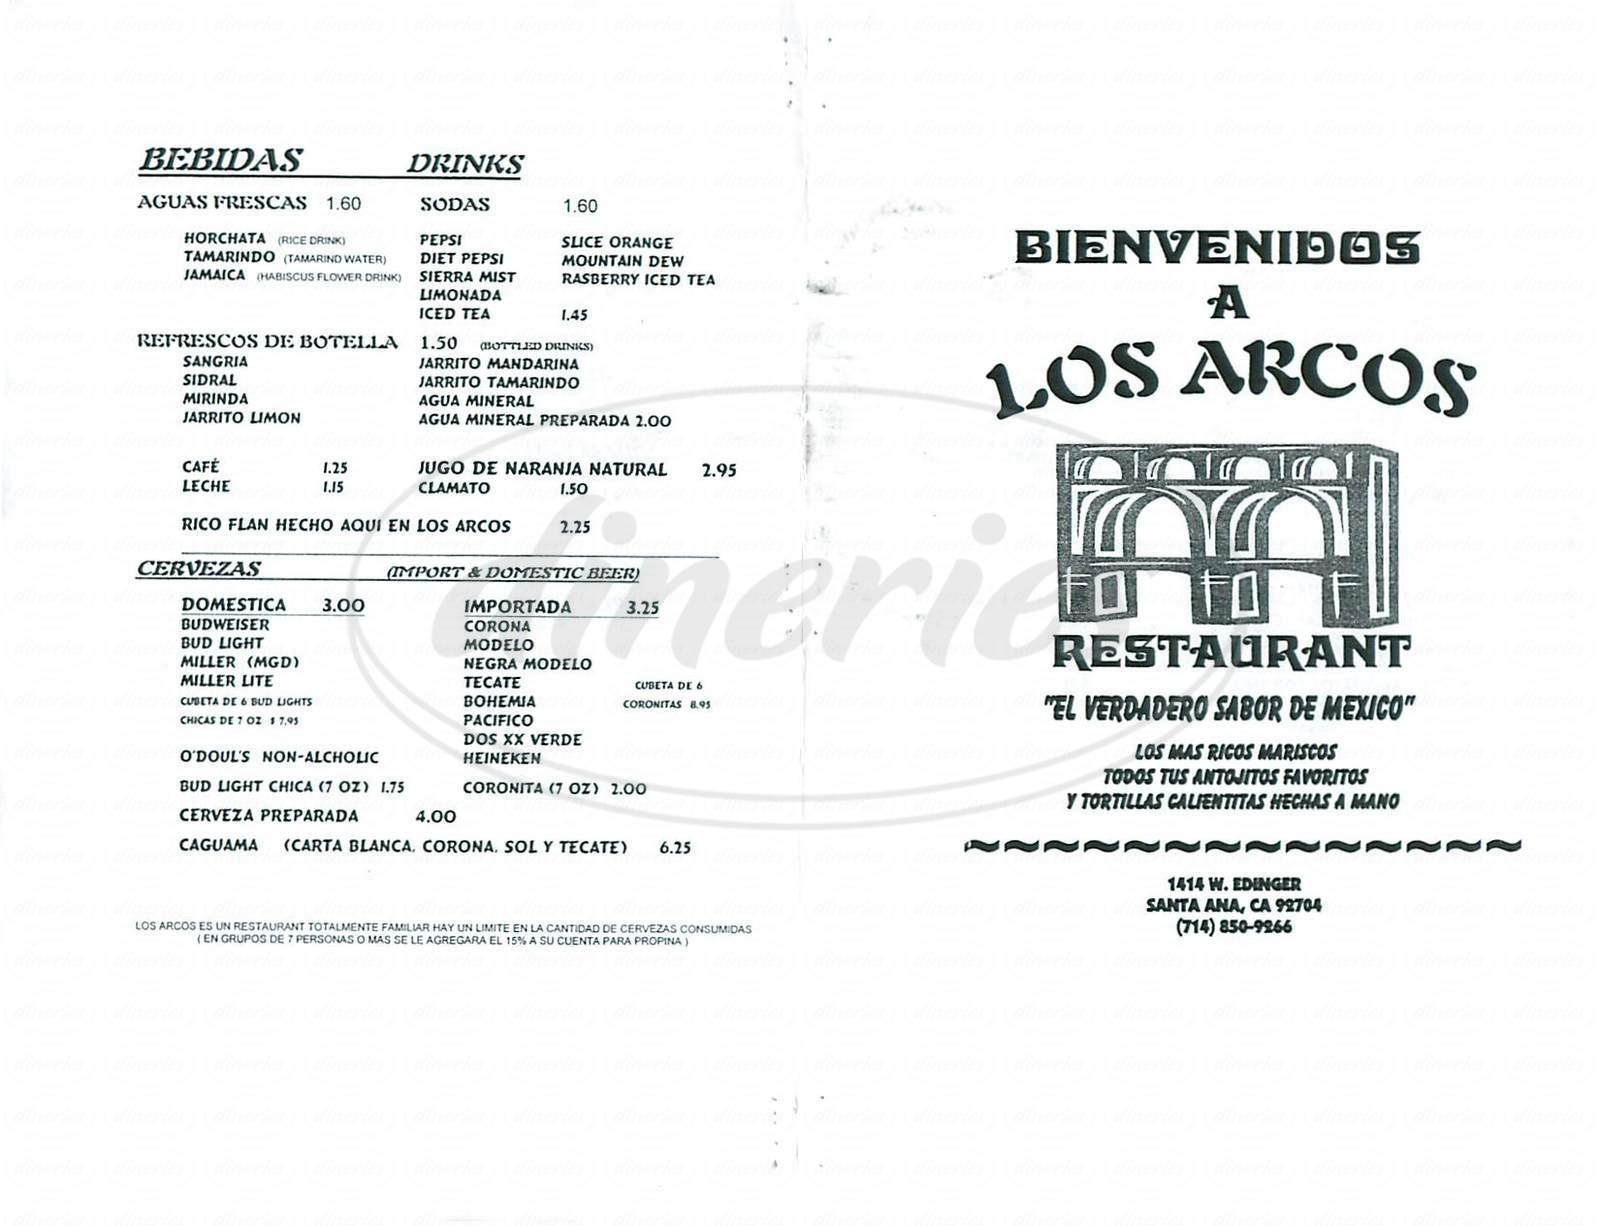 menu for Los Arcos Restaurant